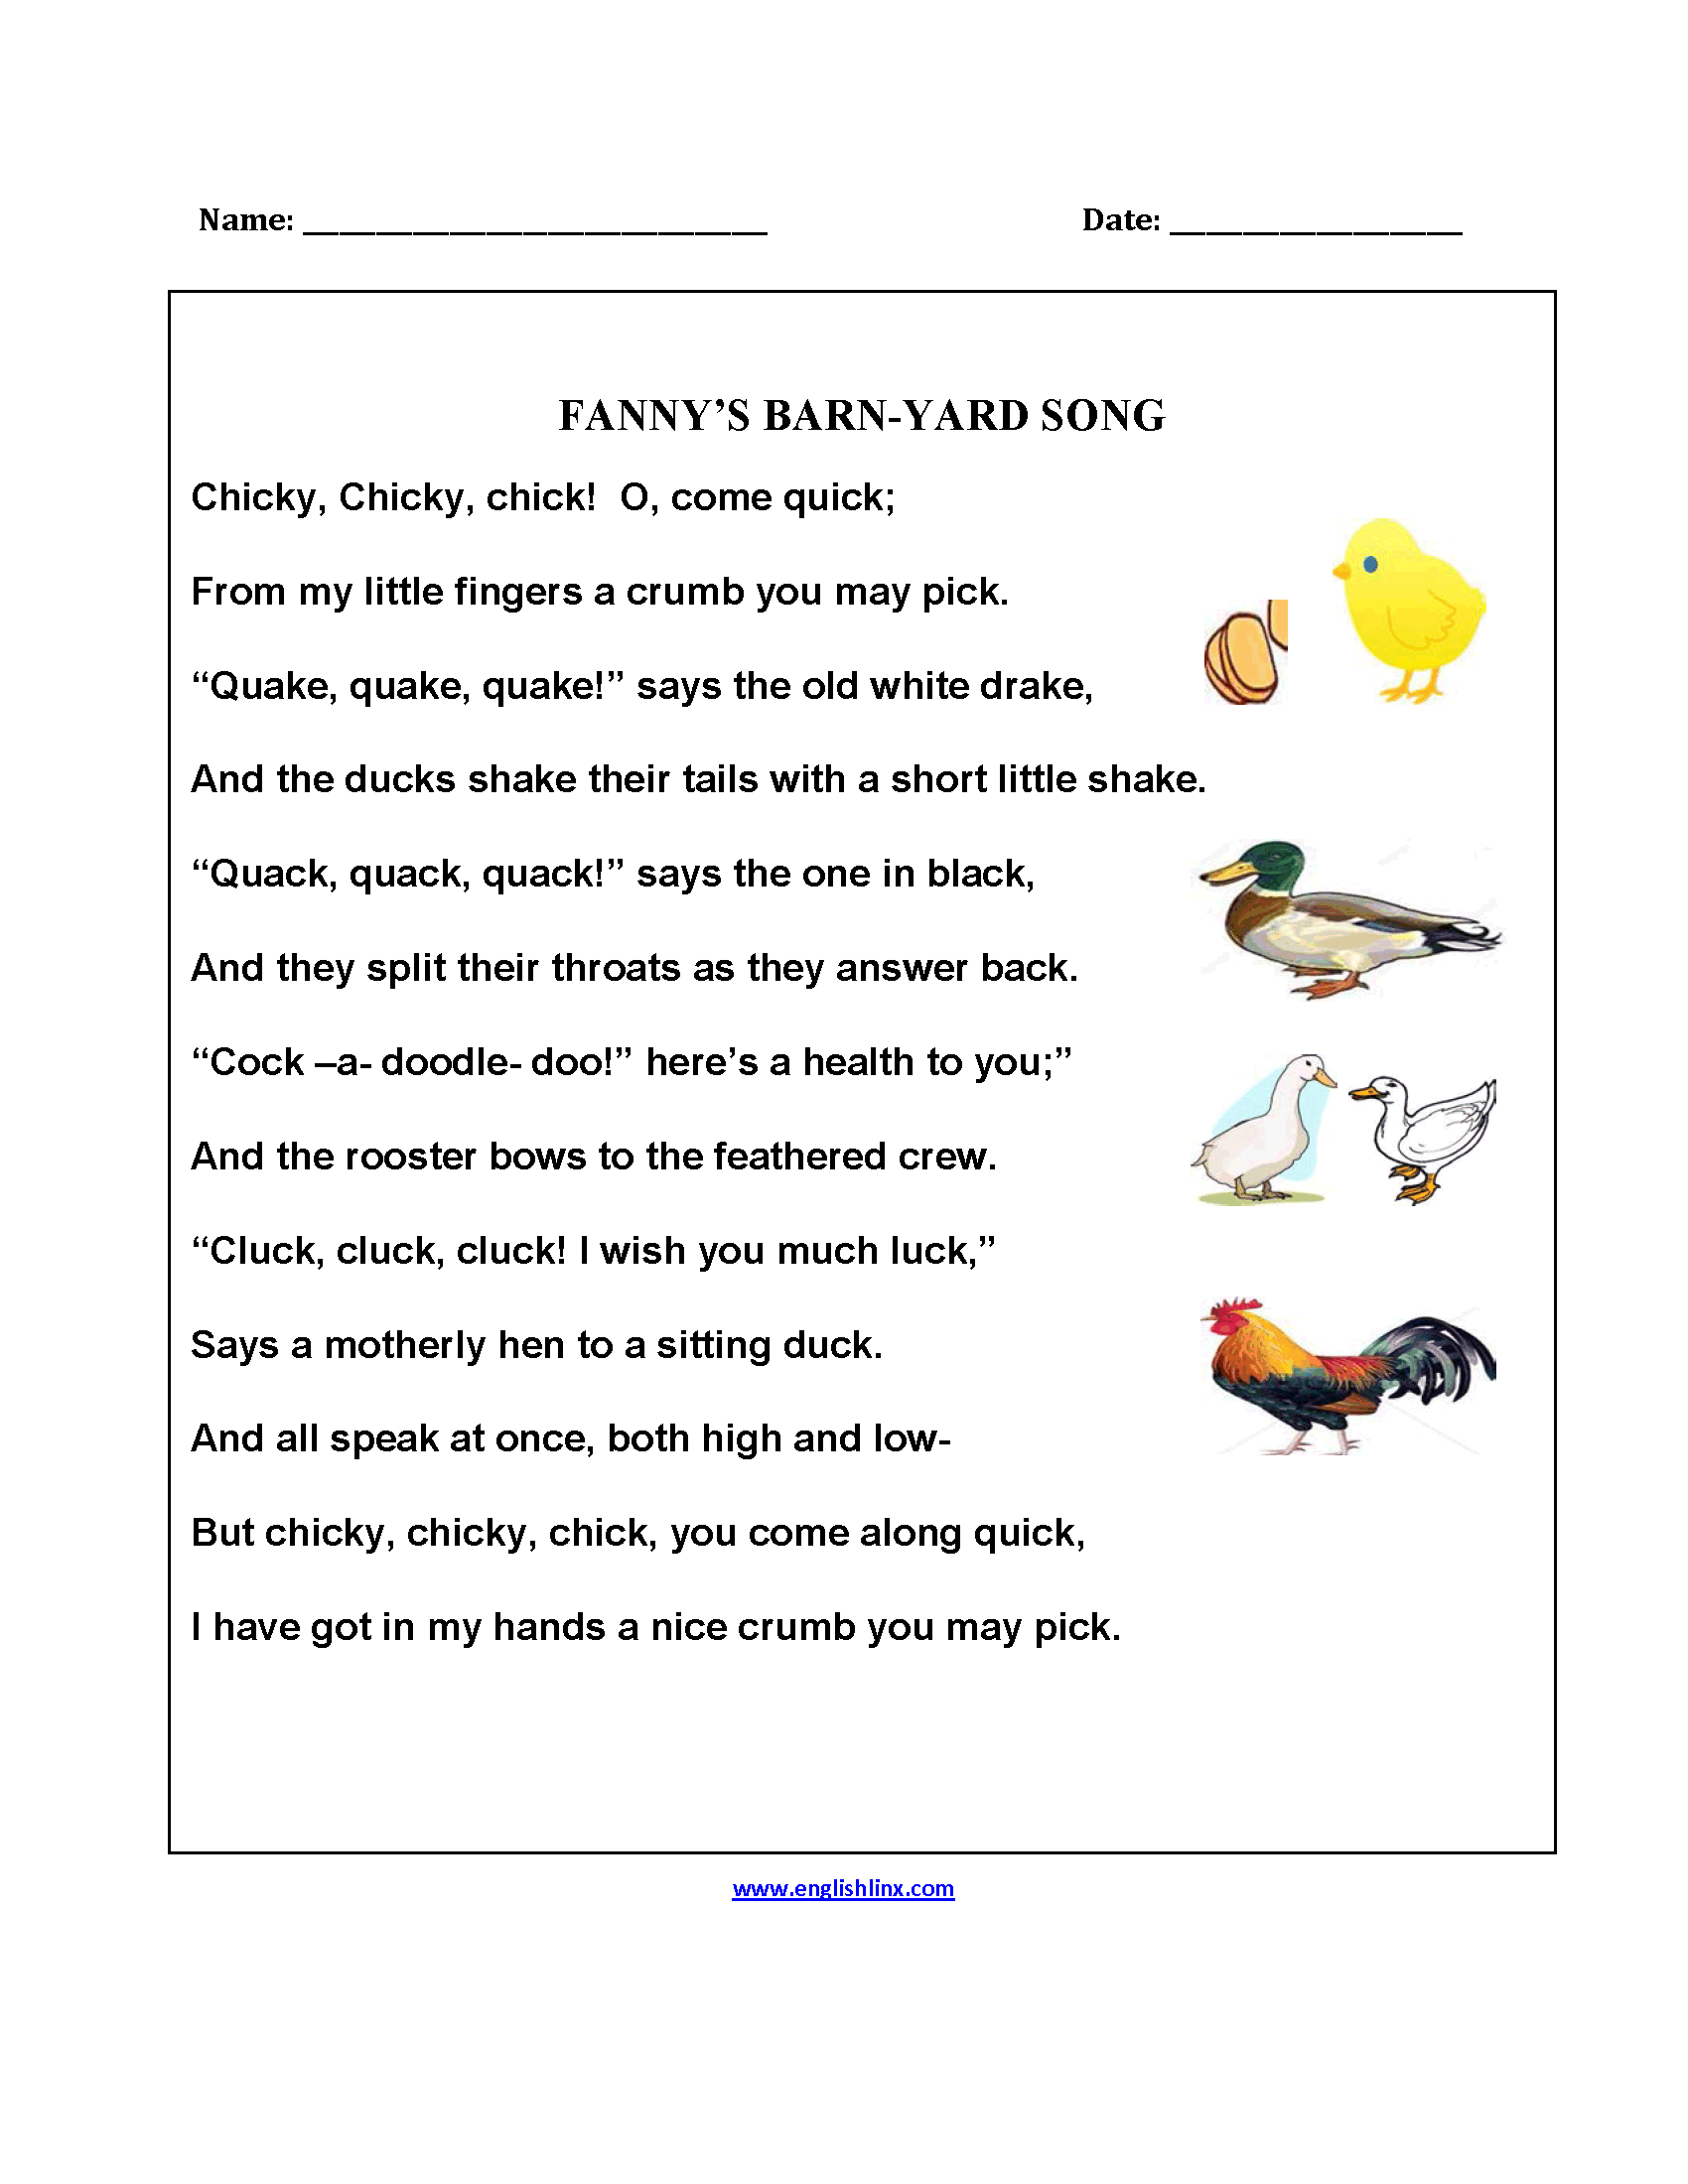 Worksheet Poetry Worksheets englishlinx com poetry worksheets worksheets